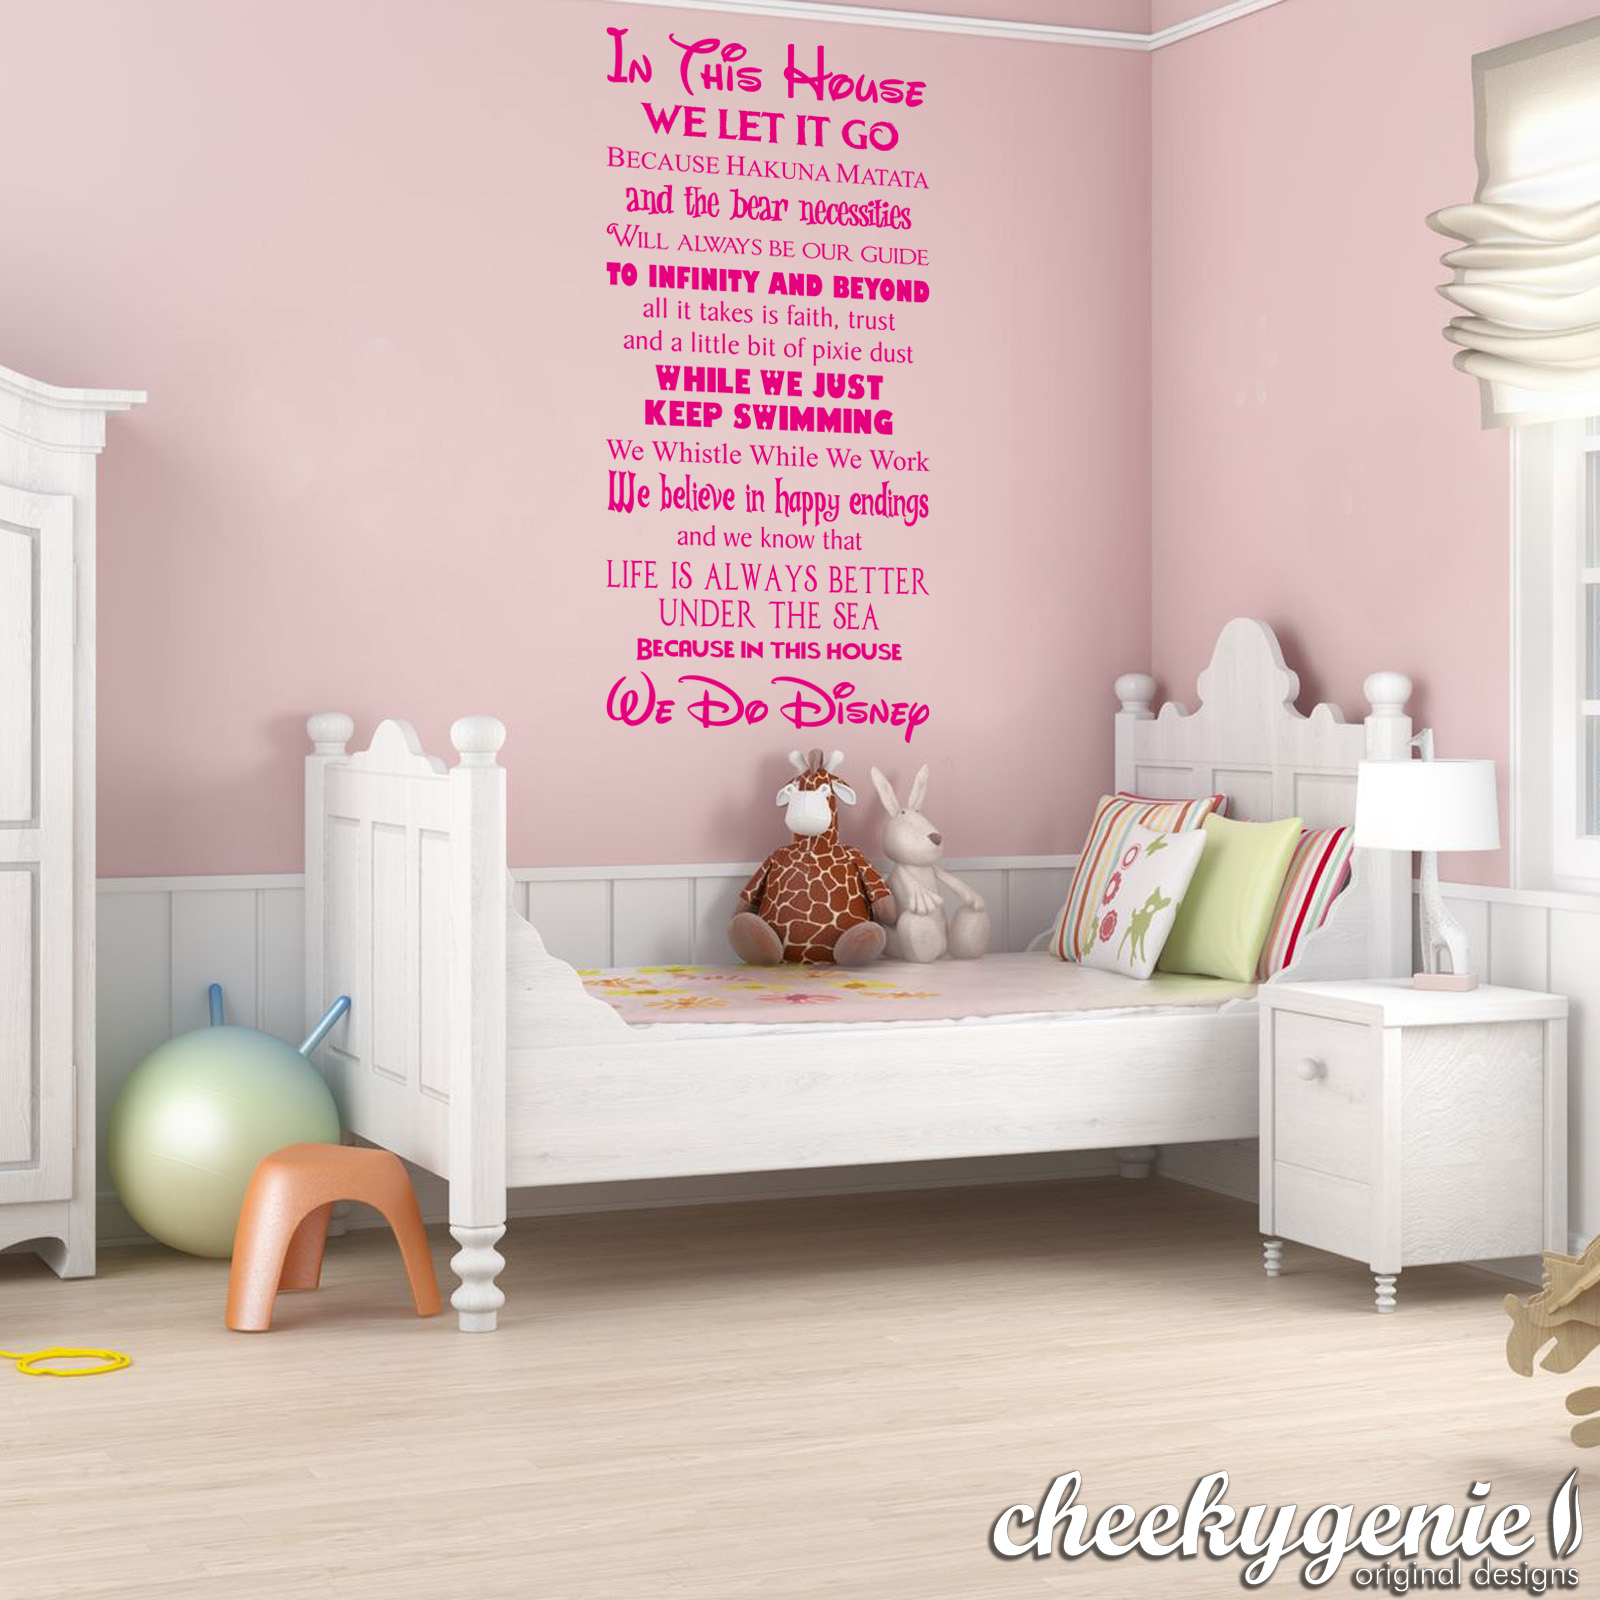 In this house we do disney style quote rules vinyl wall art in this house we do disney vinyl wall art amipublicfo Gallery